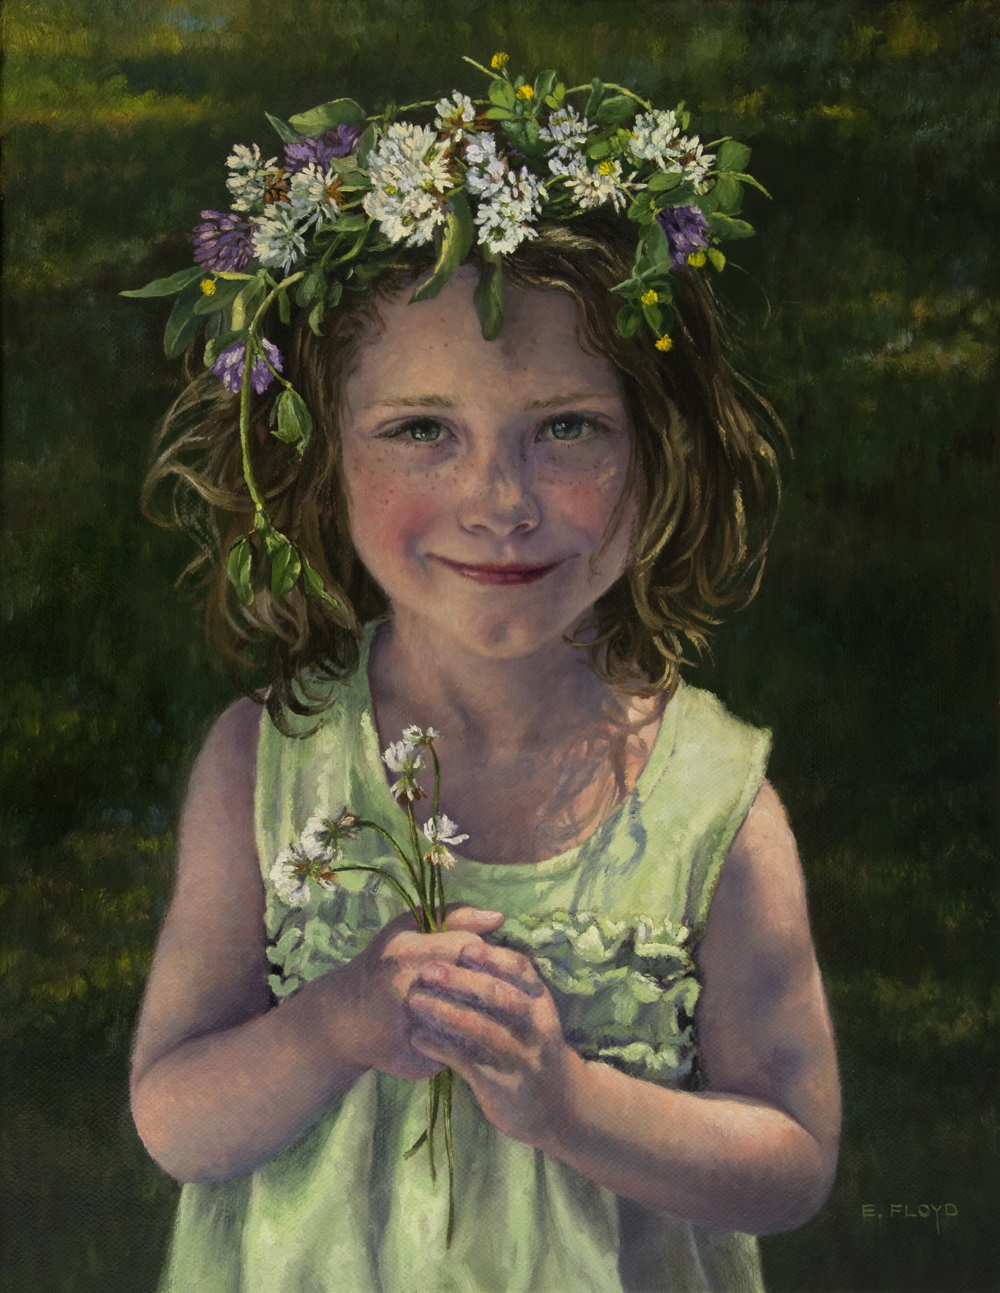 Clover Flower Crown by Elizabeth Floyd, oil on linen, 18 x 14 inches